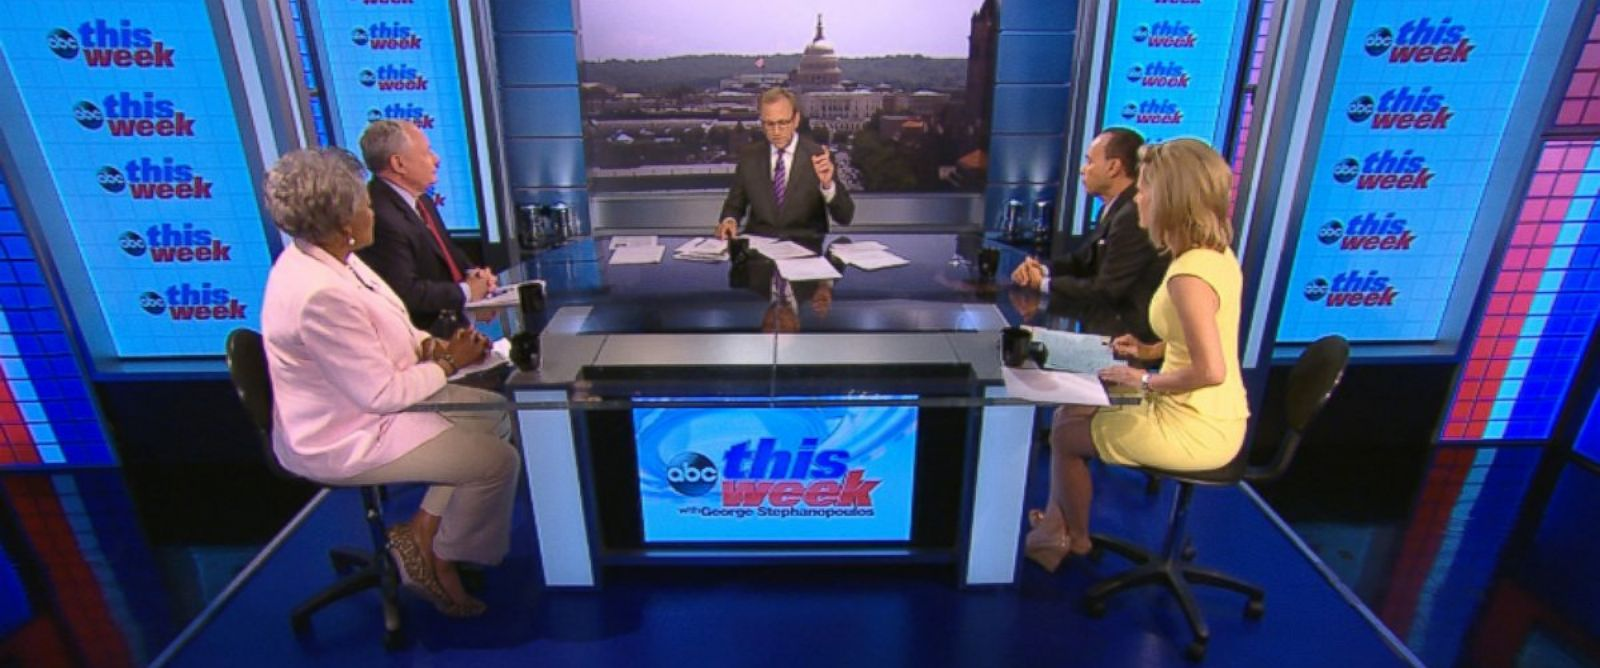 PHOTO: Rep. Luis Gutierrez (D) Illinois, ABC News Contributor and Democratic Strategist Donna Brazile, ABC News Contributor and Syndicated Radio Host Laura Ingraham, and ABC News Contributor and The Weekly Standard Editor Bill Kristol on This Week